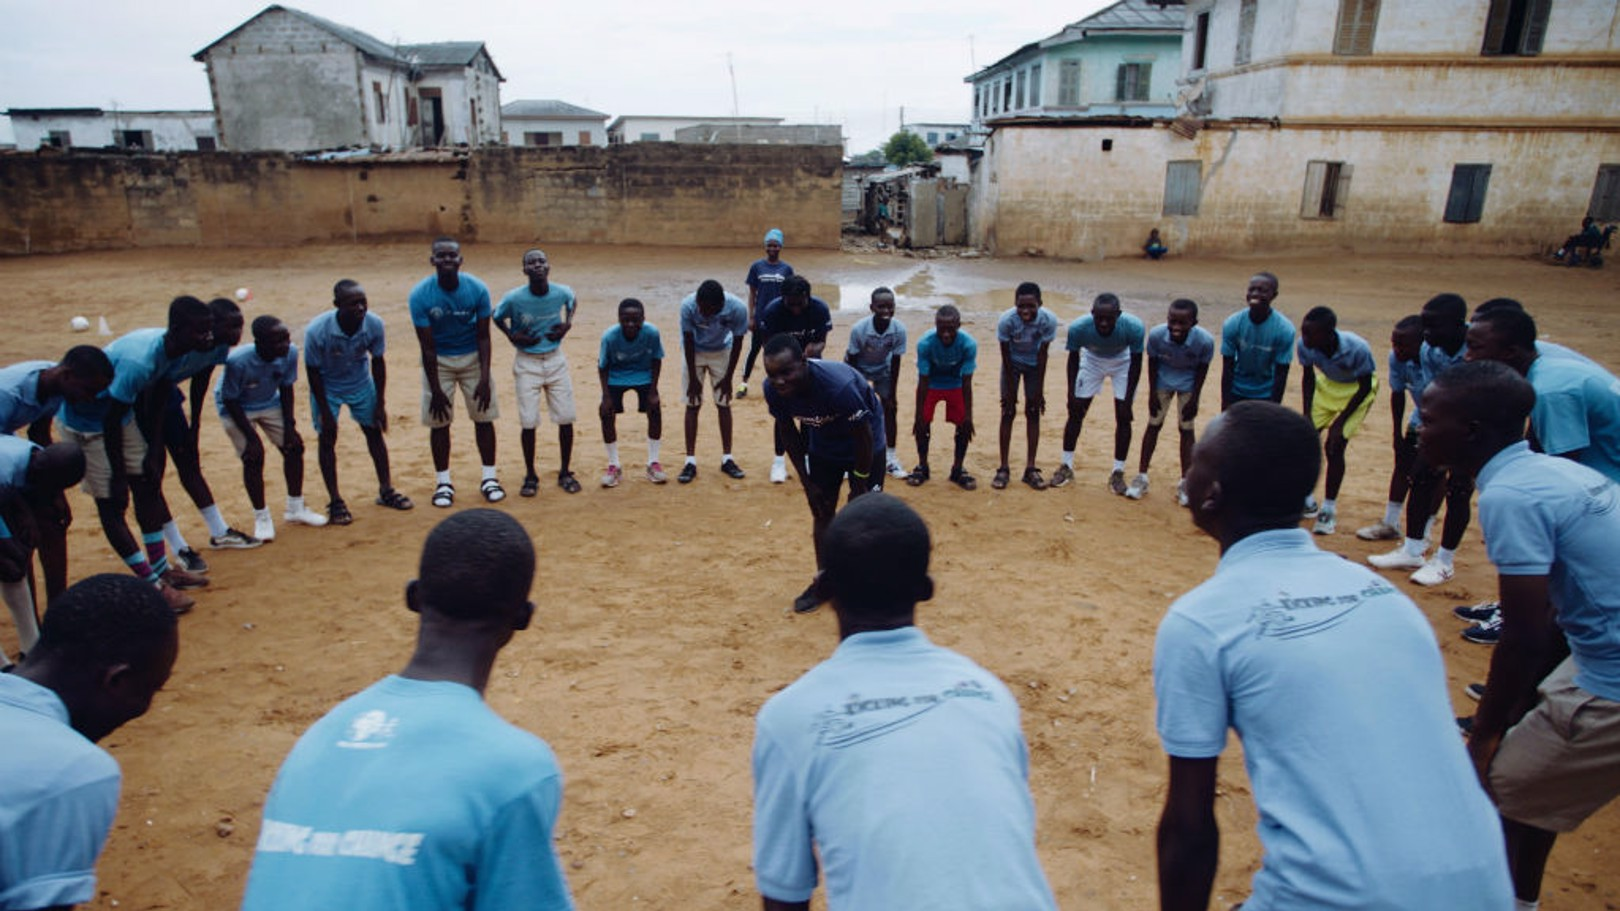 Xylem supports Cityzens Giving